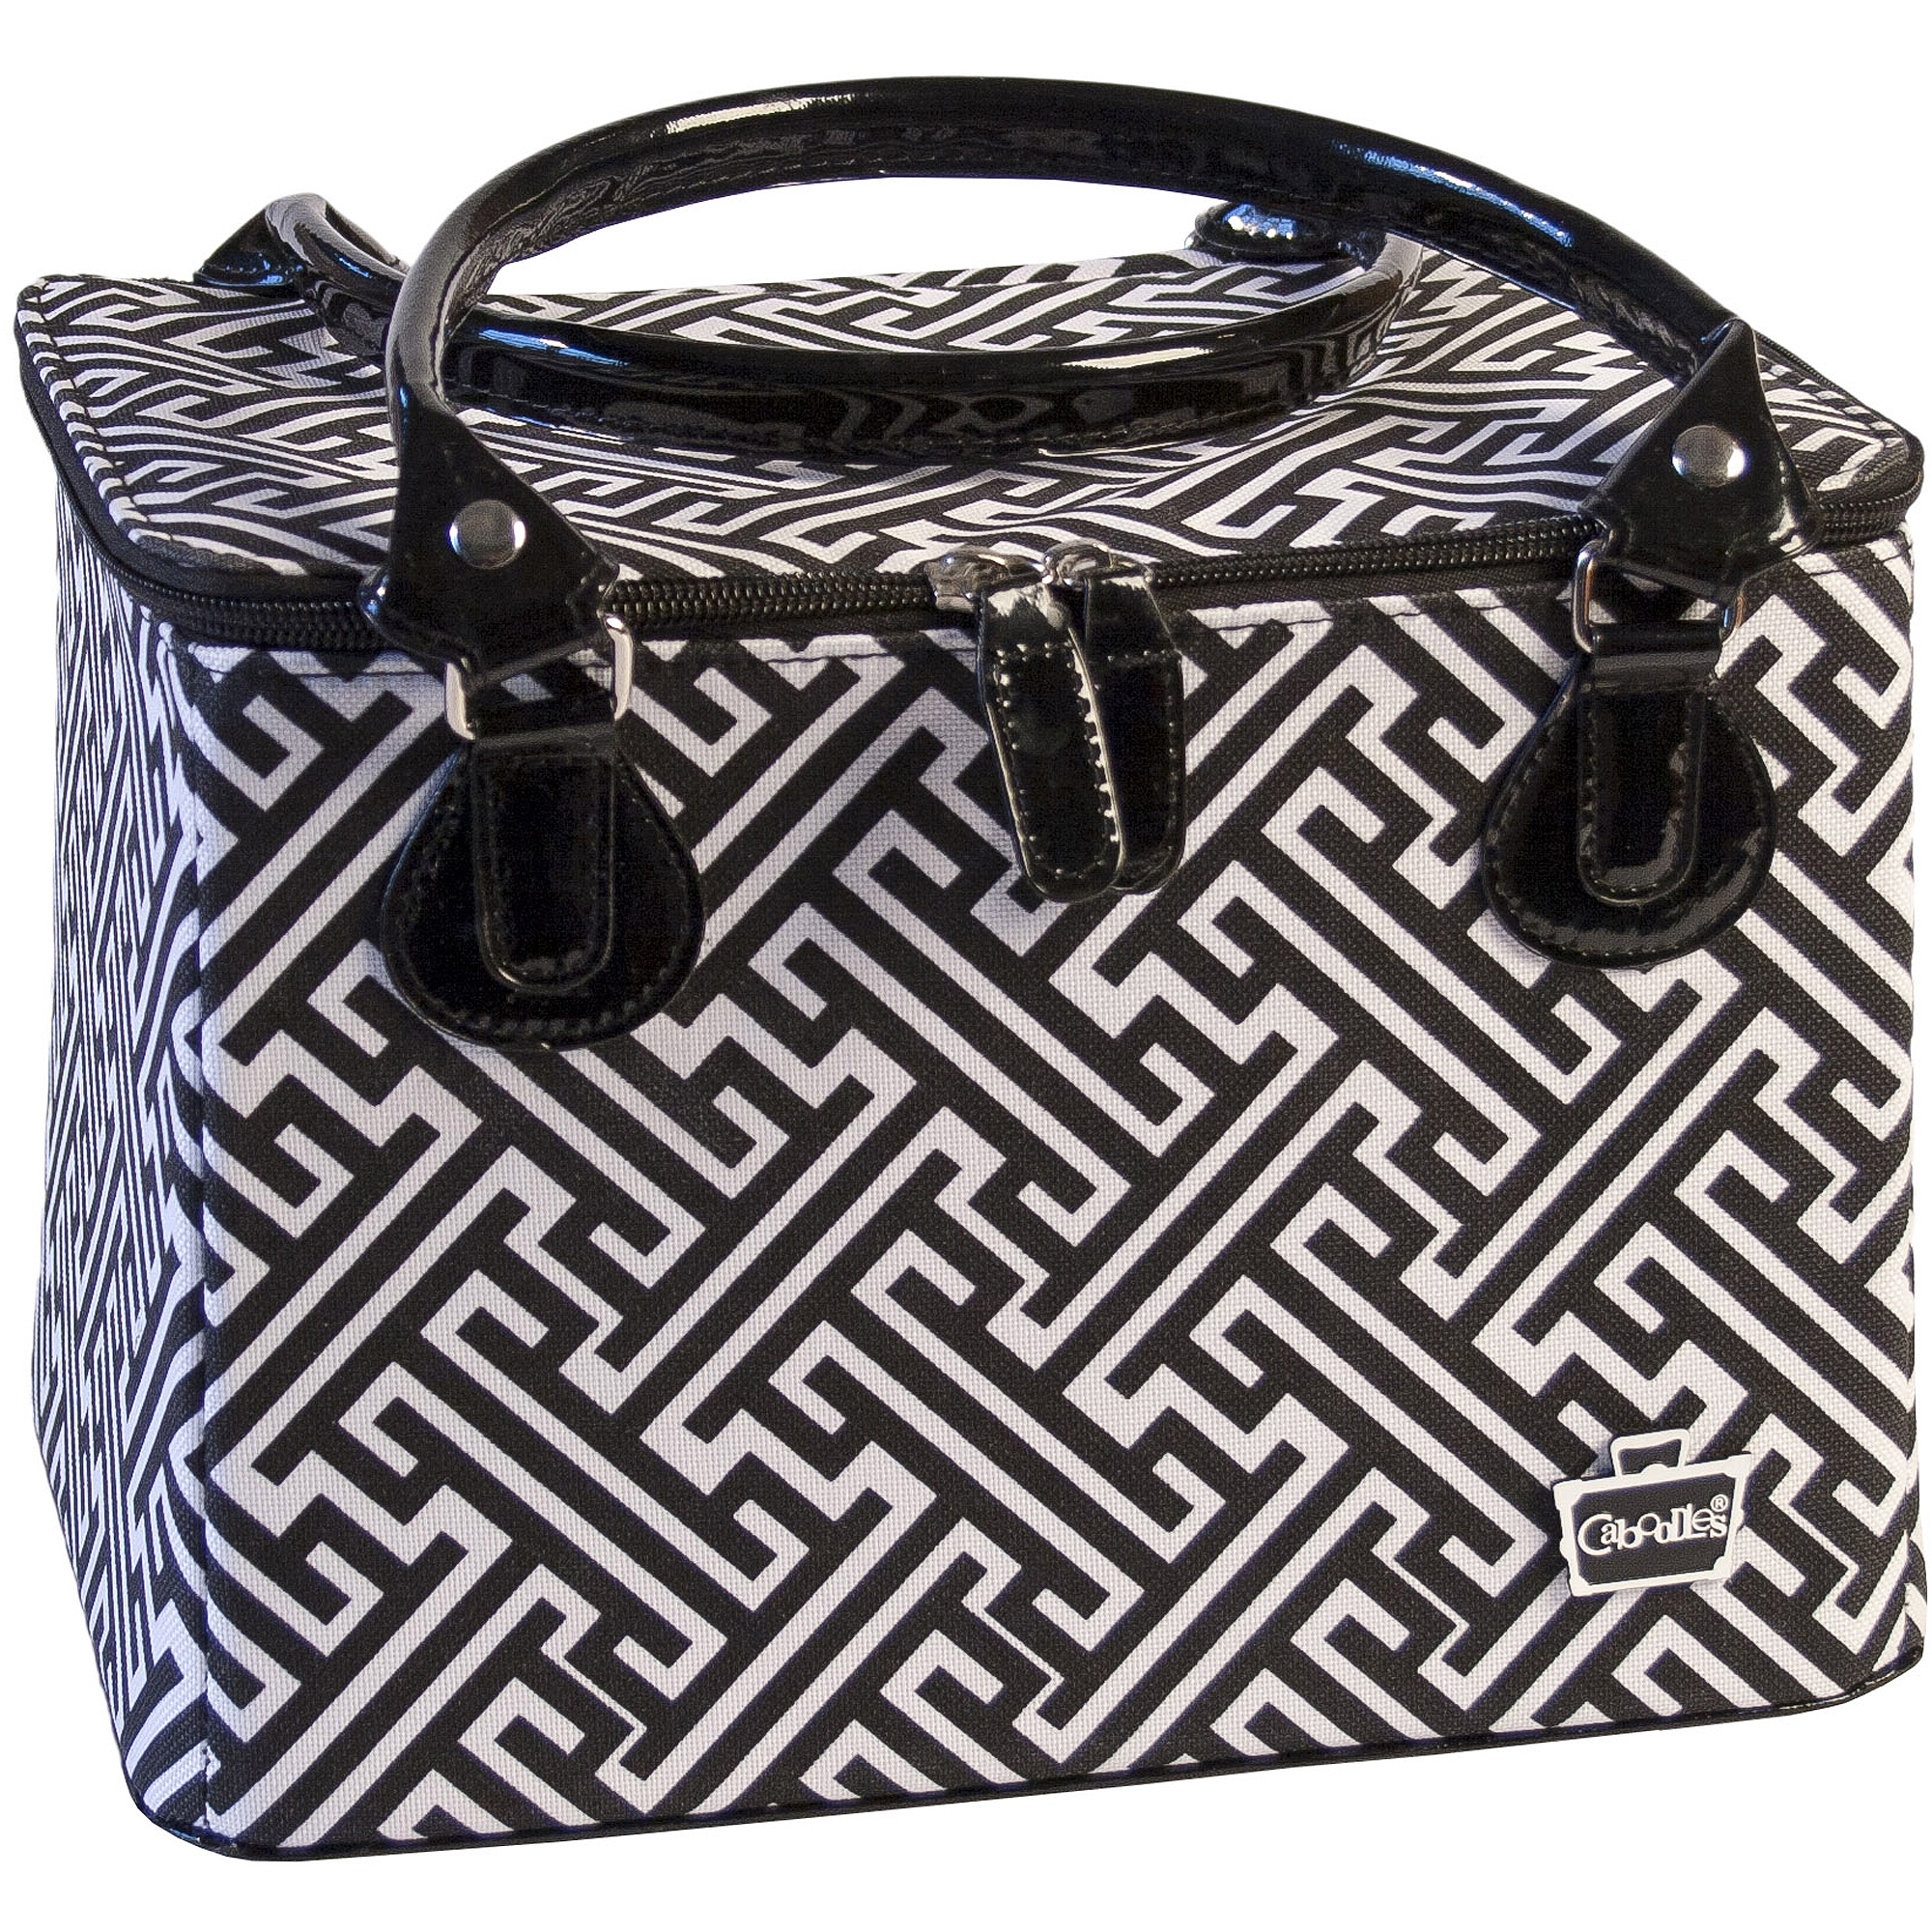 Caboodles Monaco Collection Large Tapered Tote